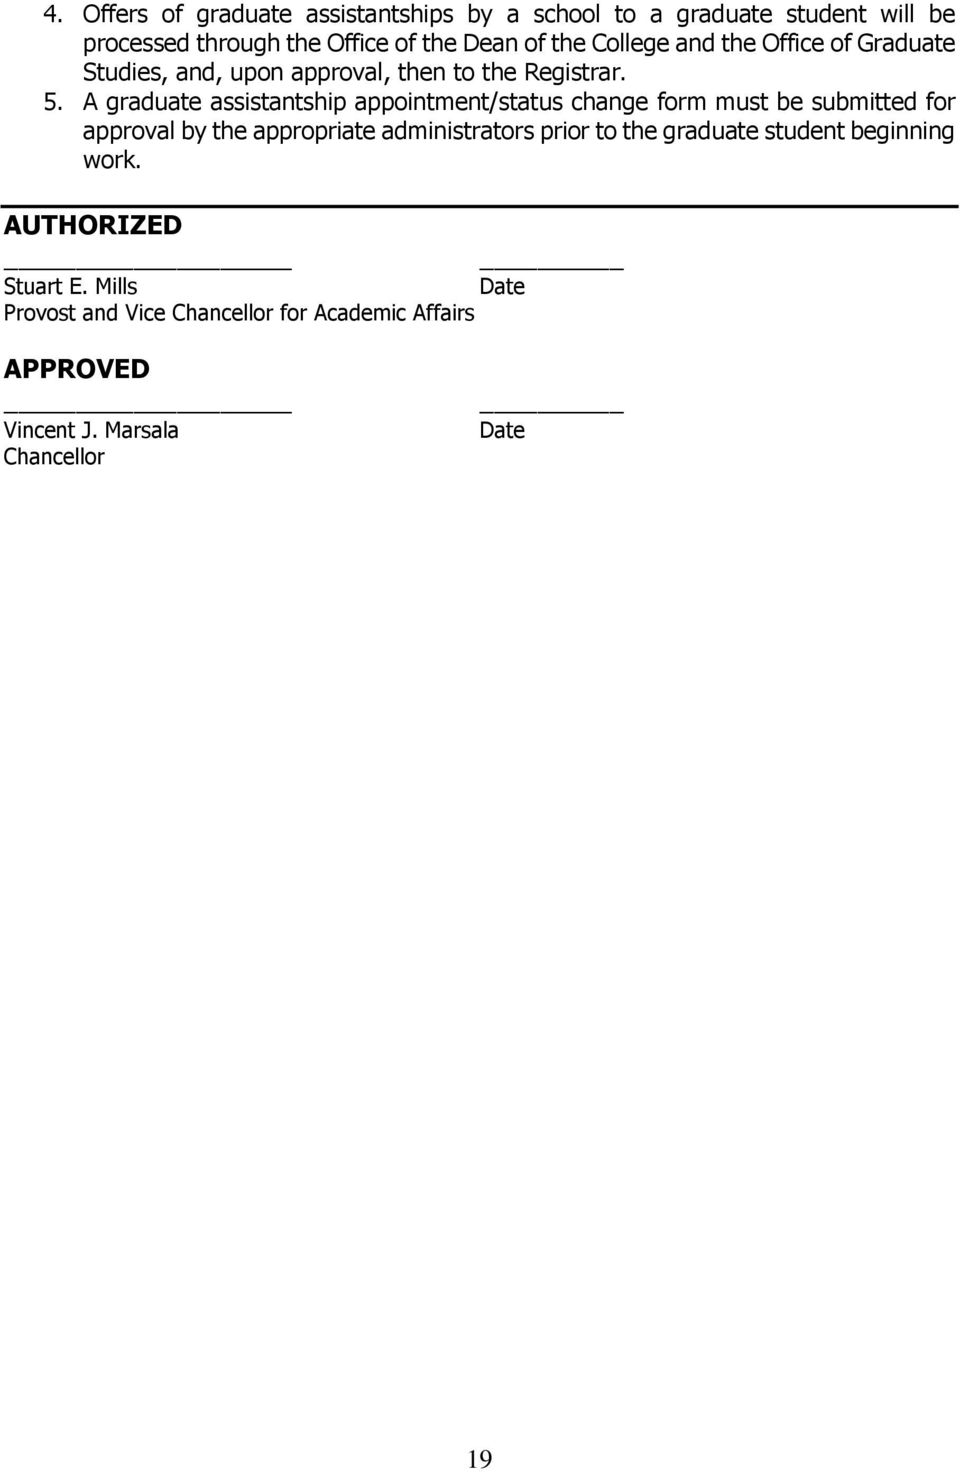 A graduate assistantship appointment/status change form must be submitted for approval by the appropriate administrators prior